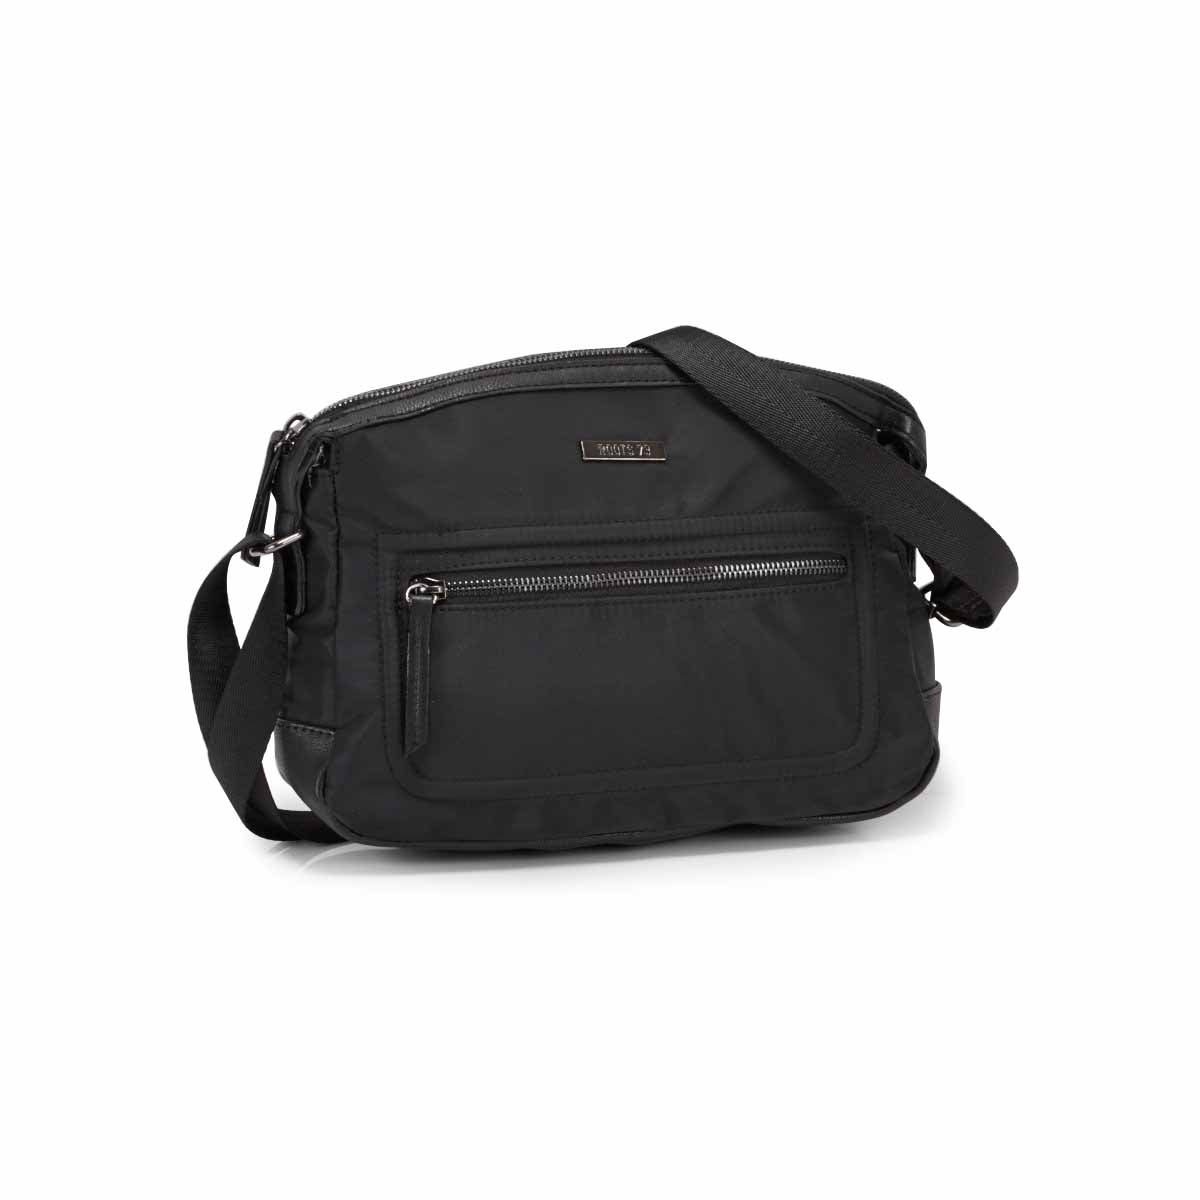 Lds Roots73 black curved top crossbody